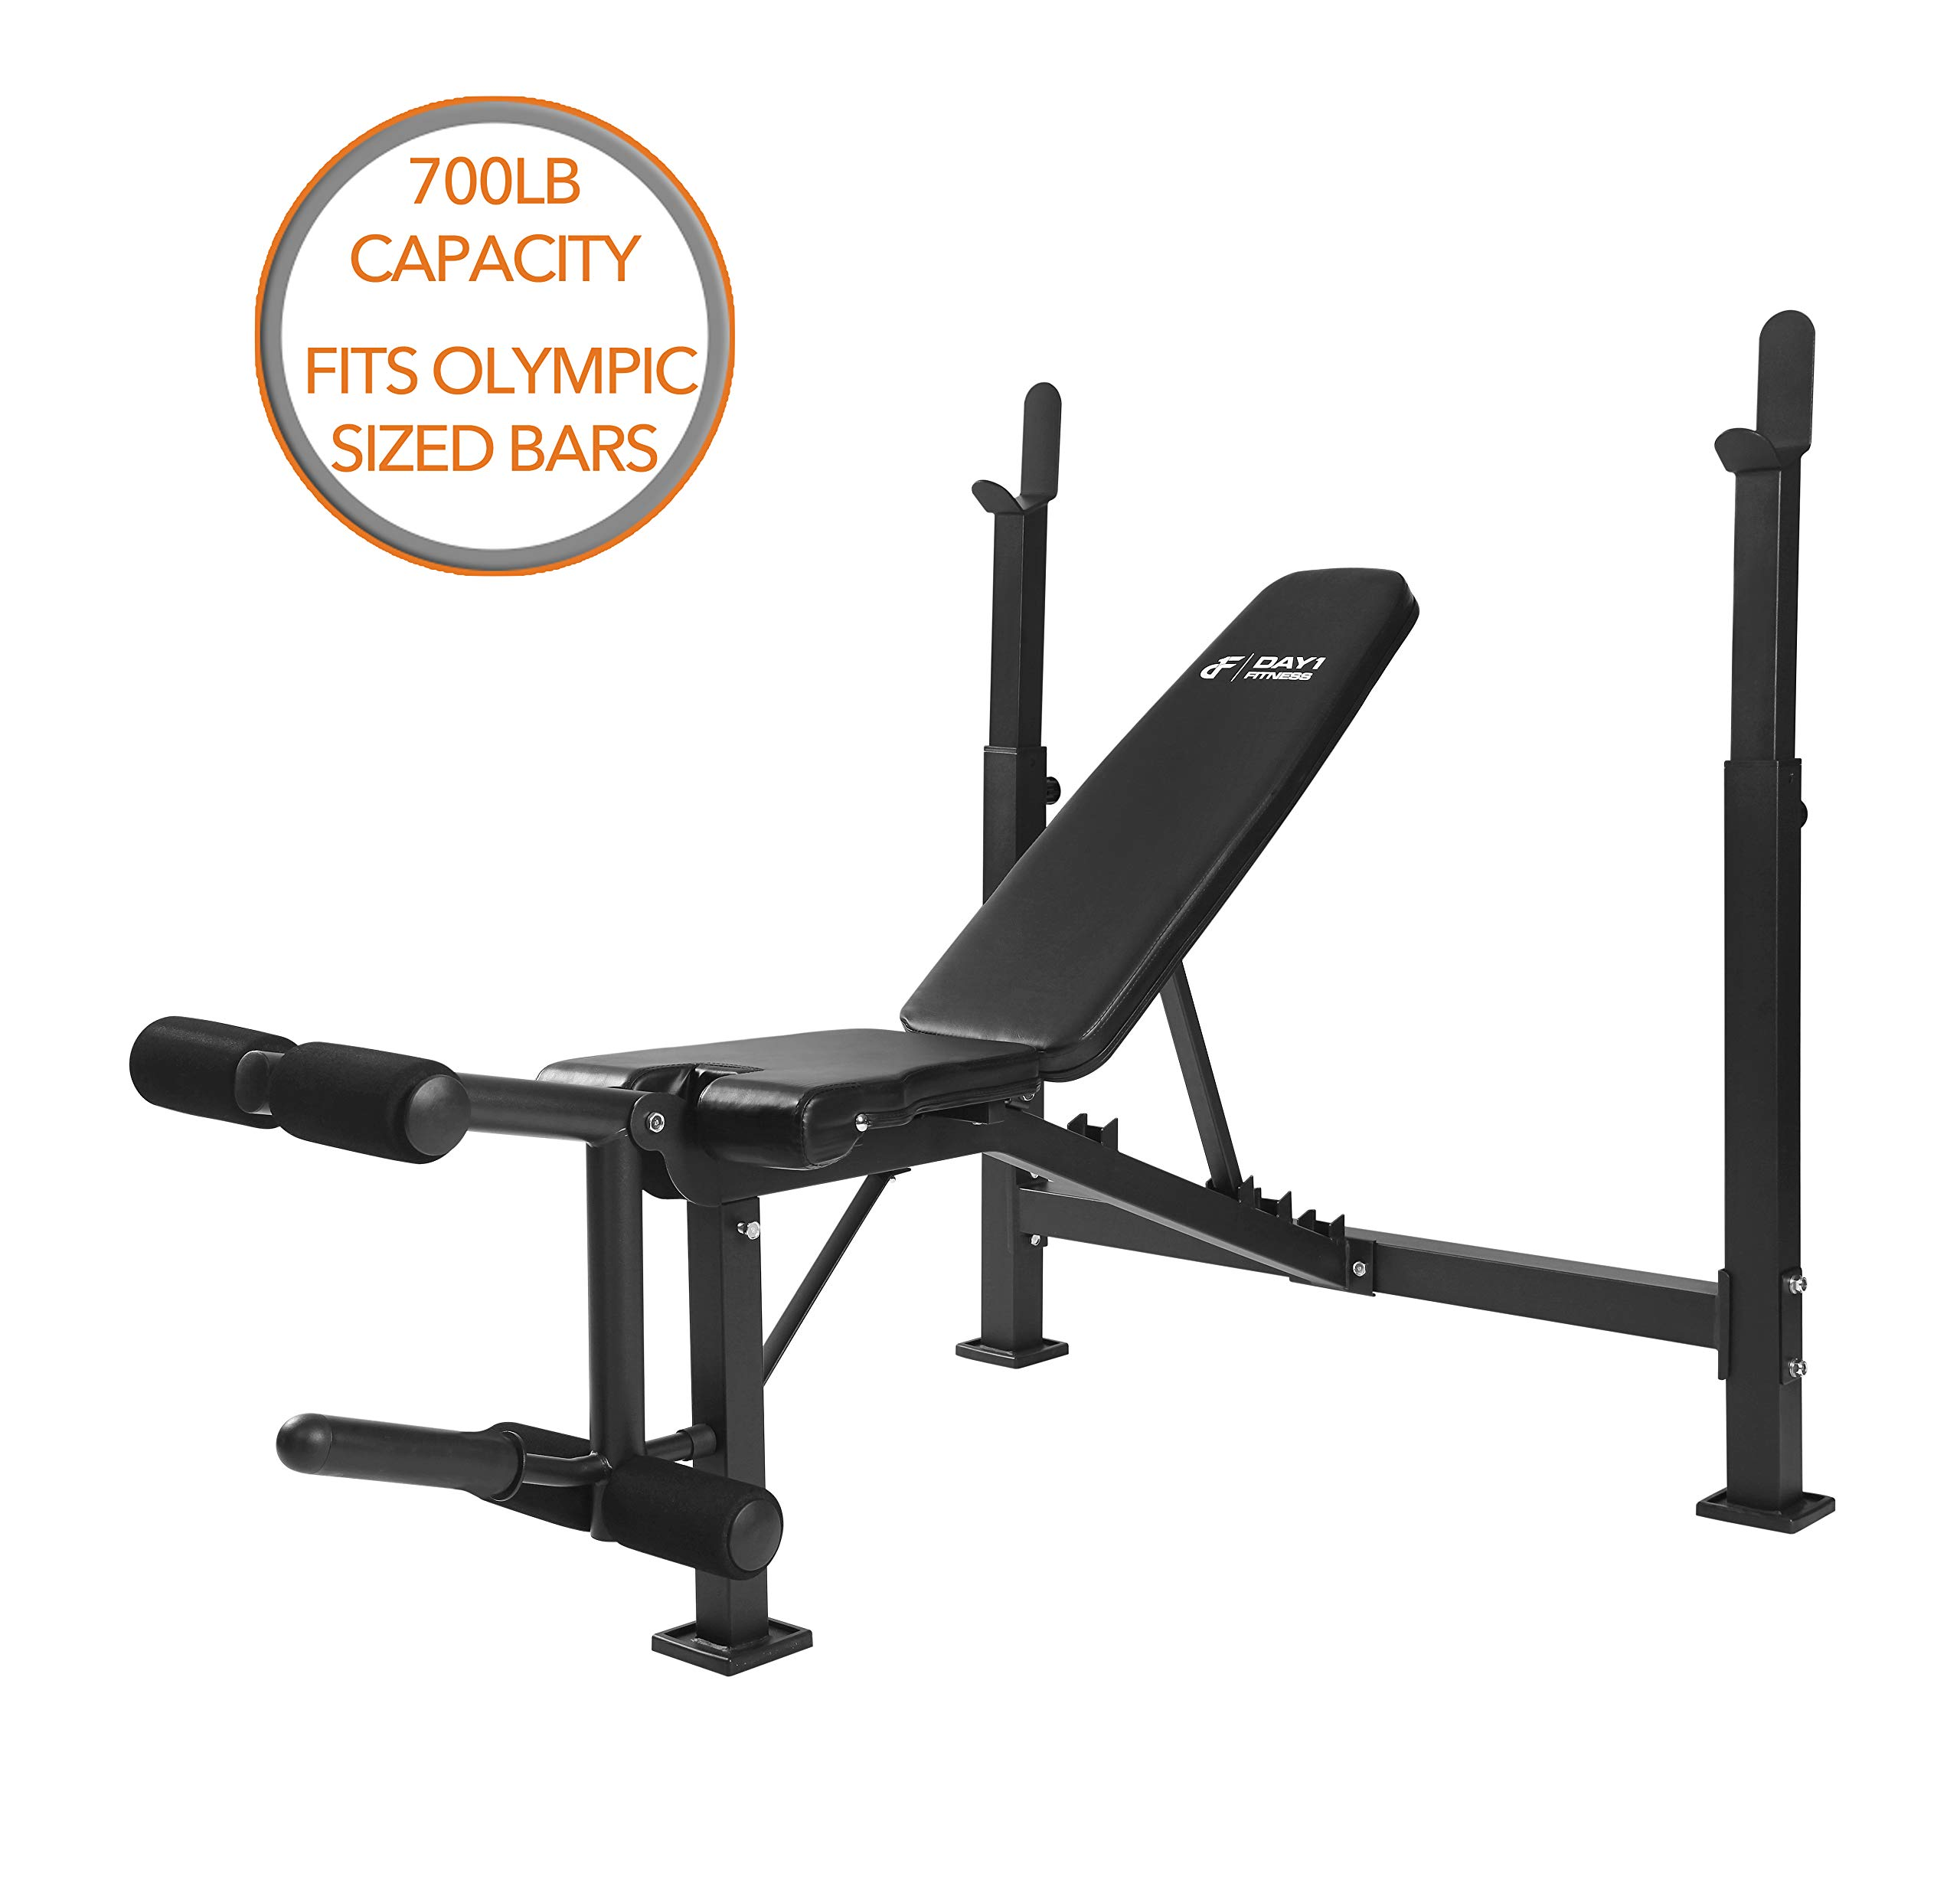 Day 1 Fitness Olympic Weight Bench with Leg Developer Attachment by D1F for Strength Training and Powerlifting Reclining Workout Benches with Leg Extension and Curls for Weightlifting